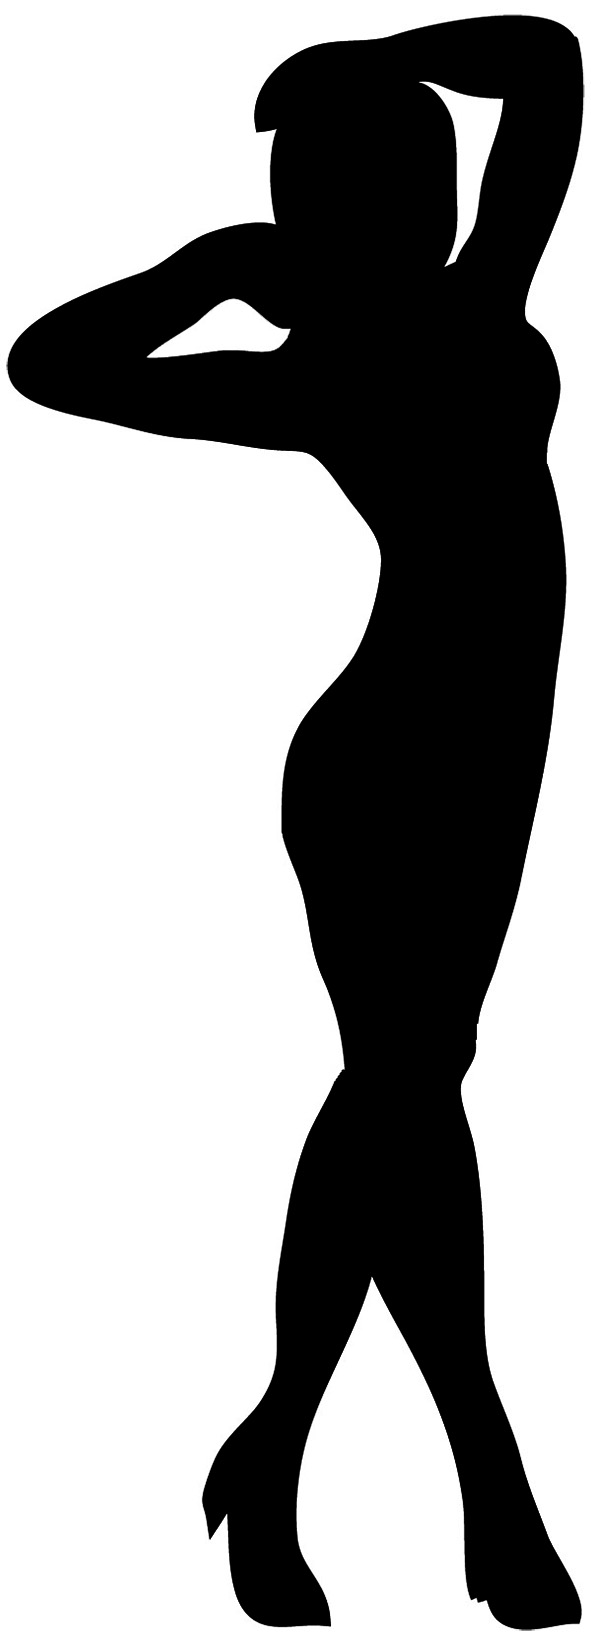 591x1632 Clipart Female Silhouette Female Silhouettes Woman Black Standing